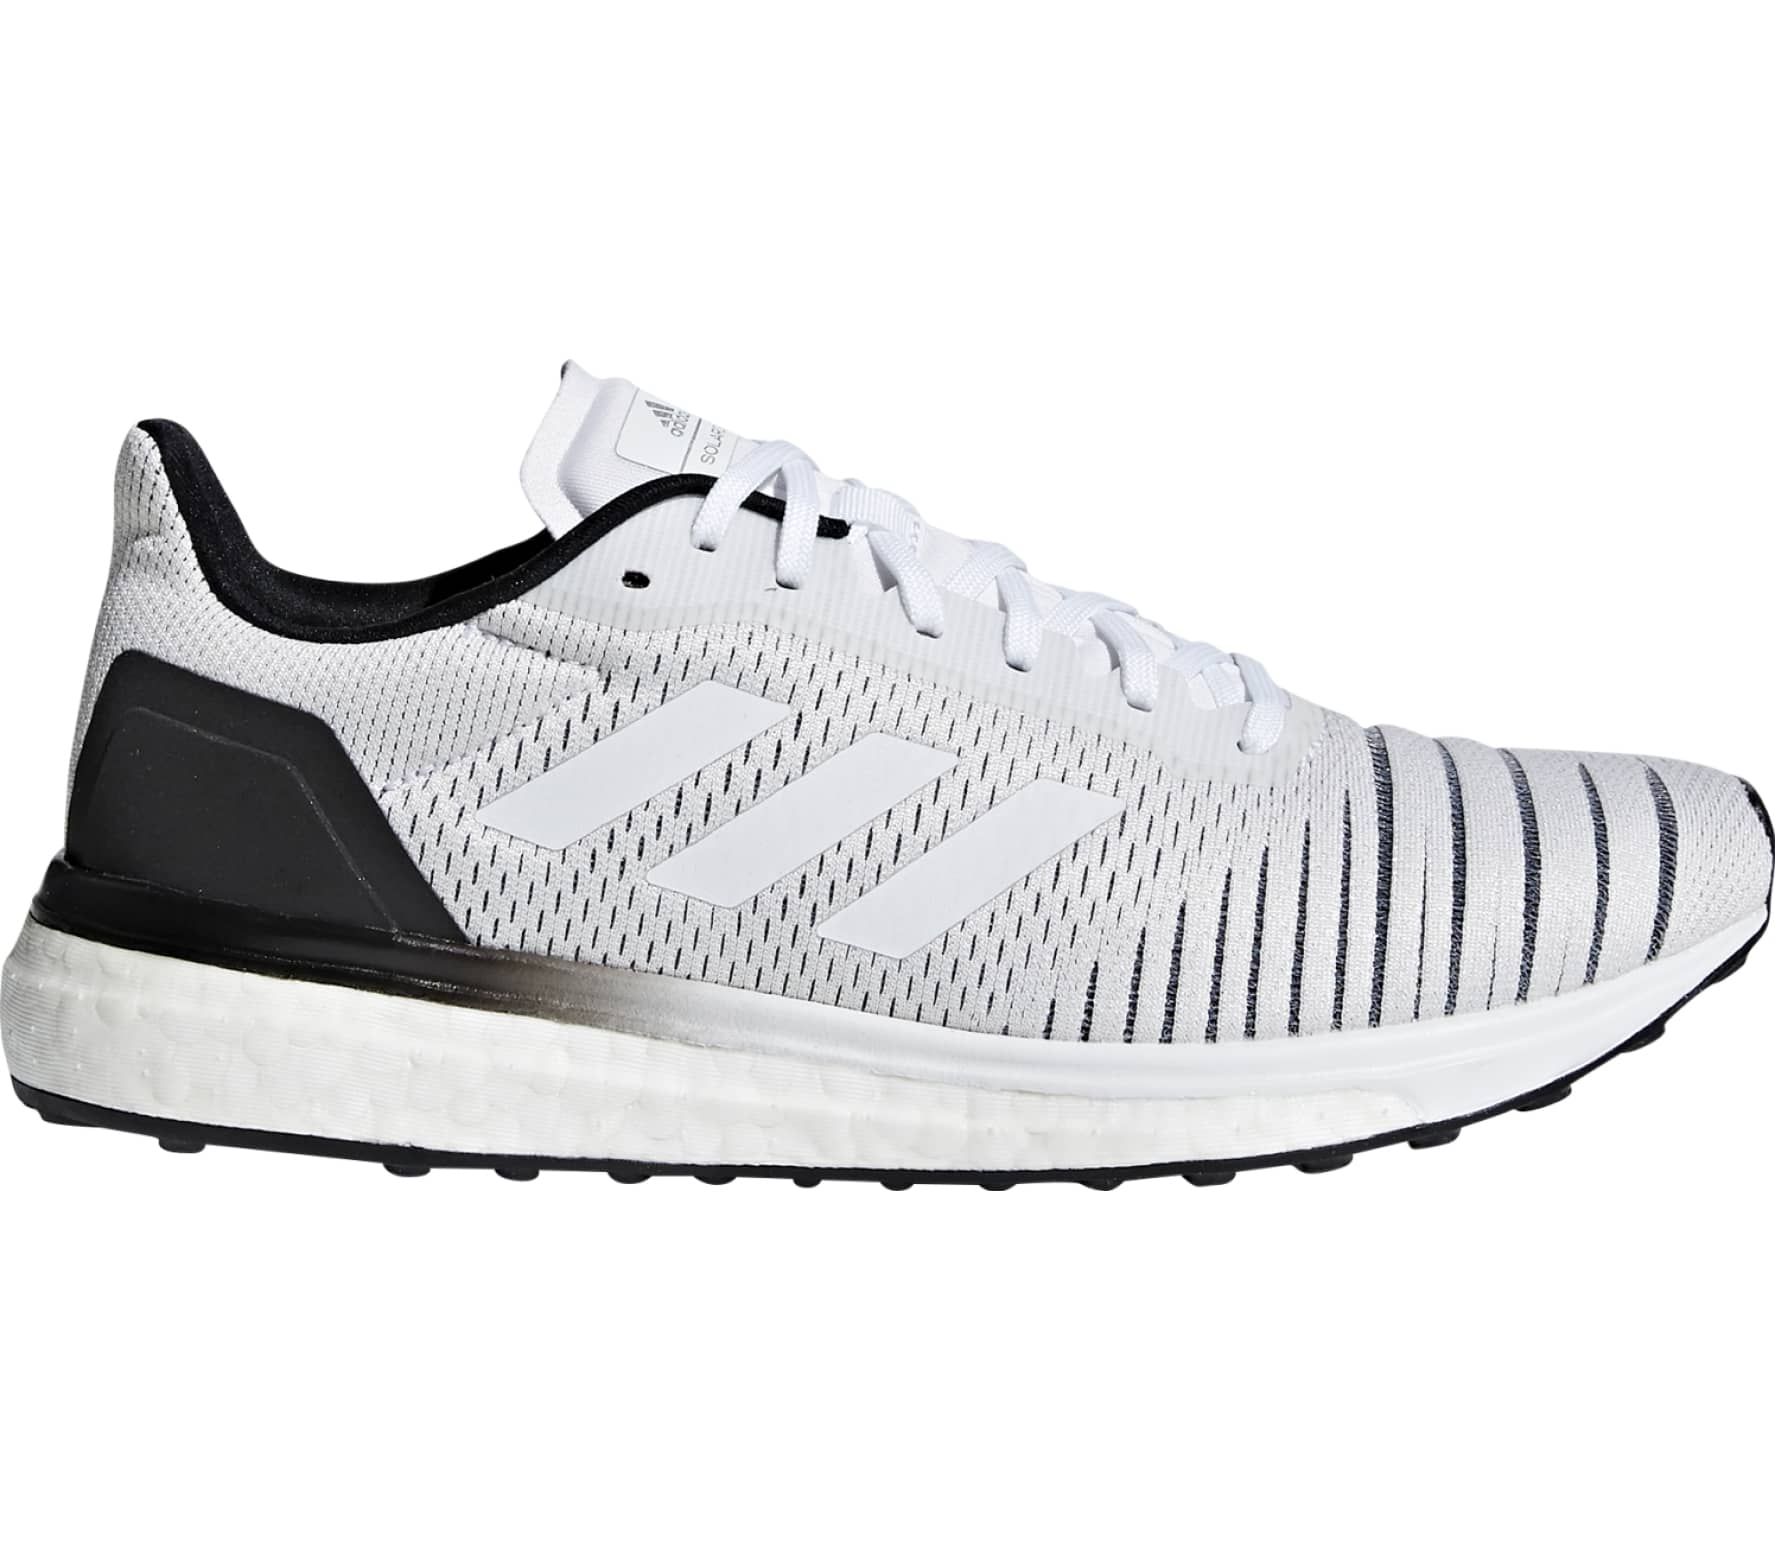 finest selection fc6d5 577fd Adidas - solar drive Mujer Zapatos para correr (blanco negro)